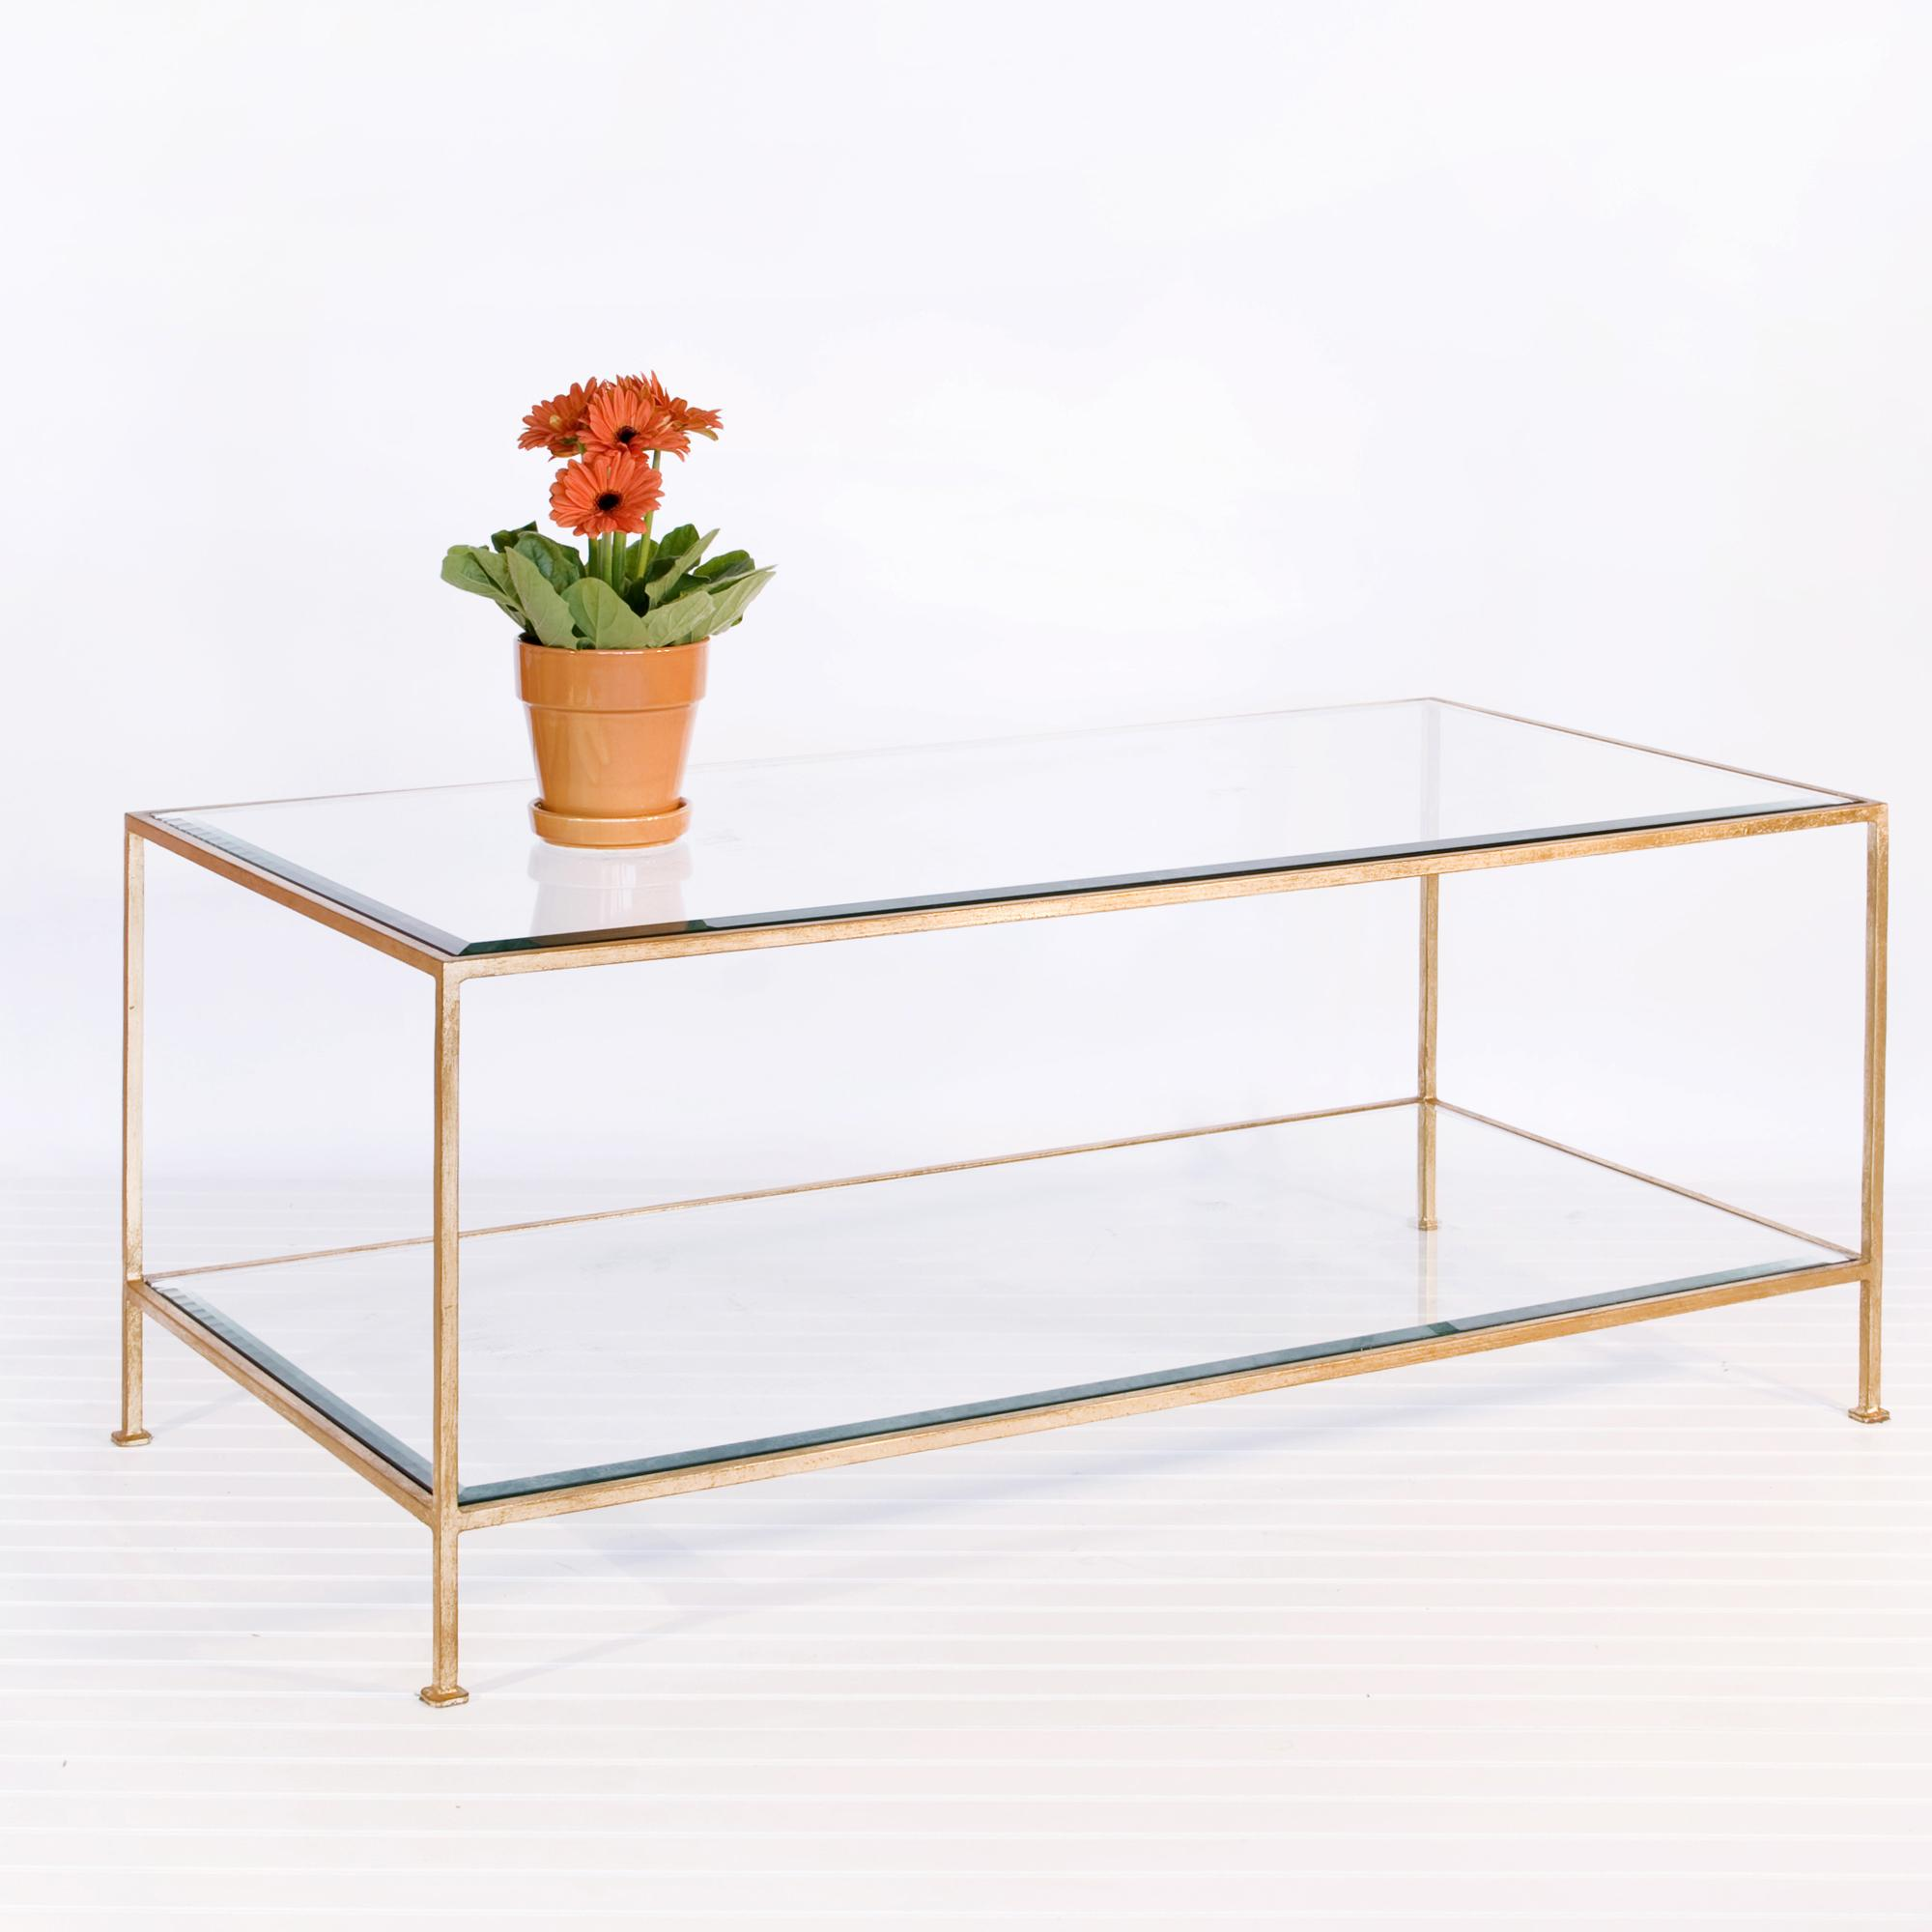 Glass Gold Coffee Table You Keep Your Things Organized And The Table Top Clear The Perfect Size To Fit With One Of Our Younger Sectional Sofas (Image 10 of 10)